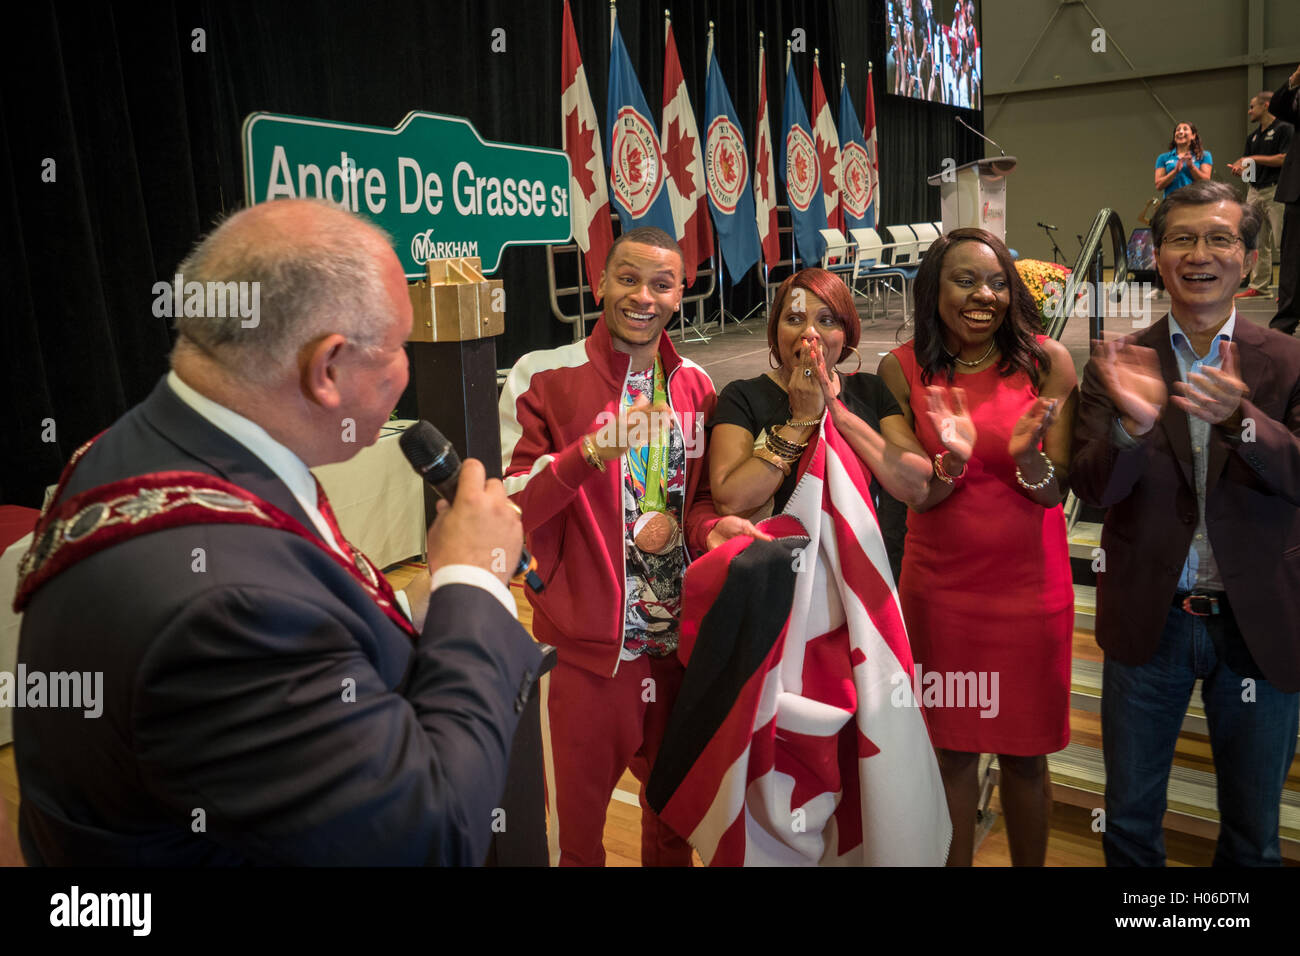 Andre De Grasse Canadian Olympic Hero, Athlete medal winner in Home coming event  Markham Pan Am Centre Ontario - Stock Image